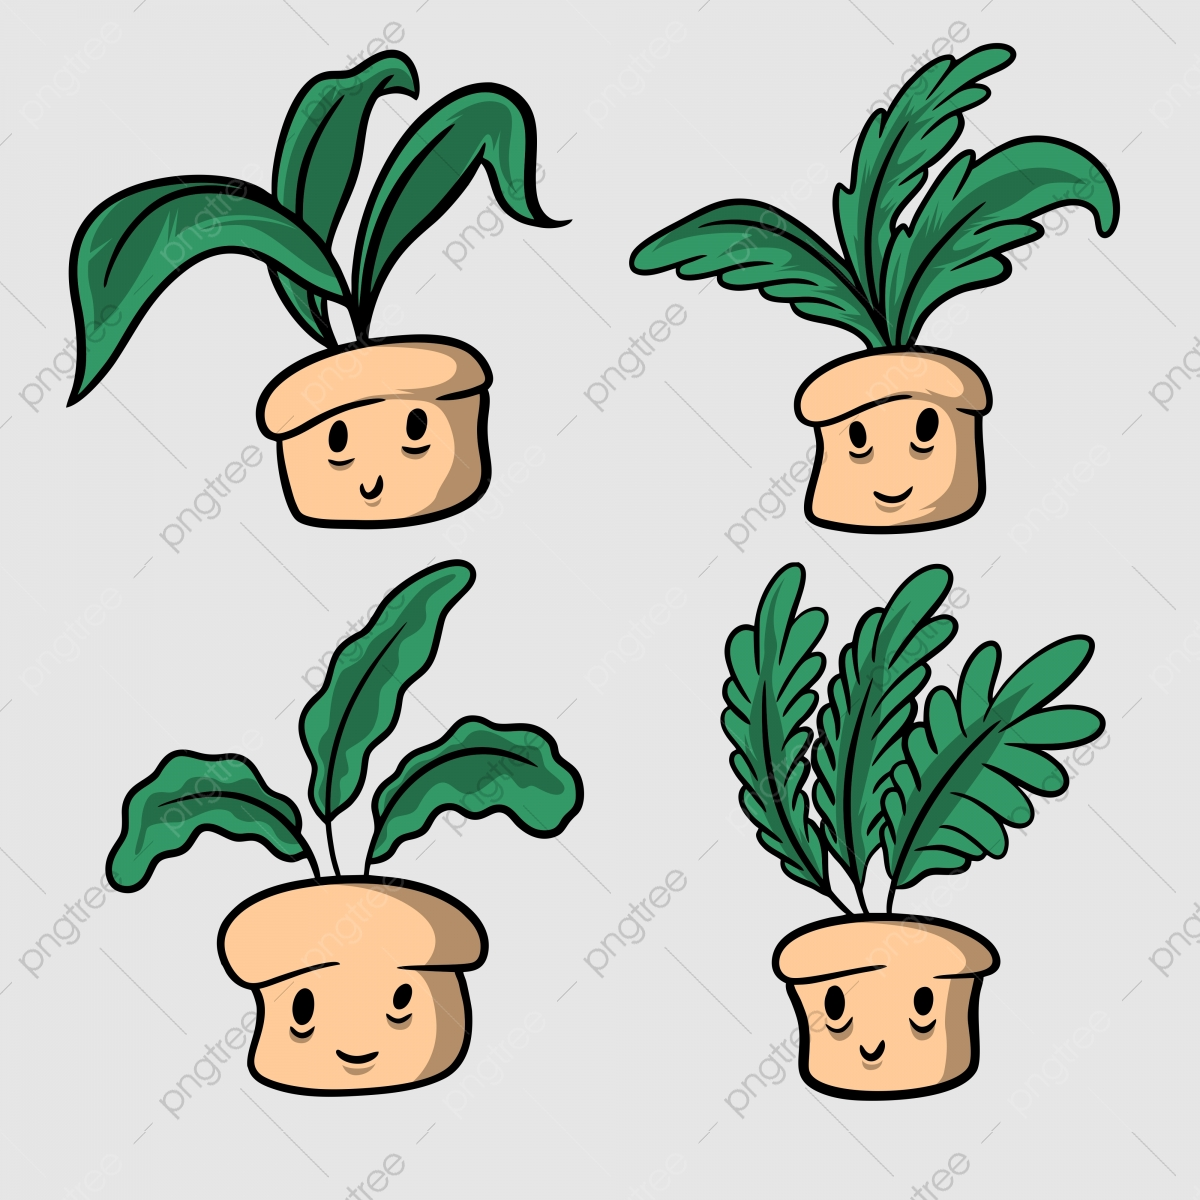 Cute Plant Illustration Hand Drawn Style Art Background Botanical Png And Vector With Transparent Background For Free Download